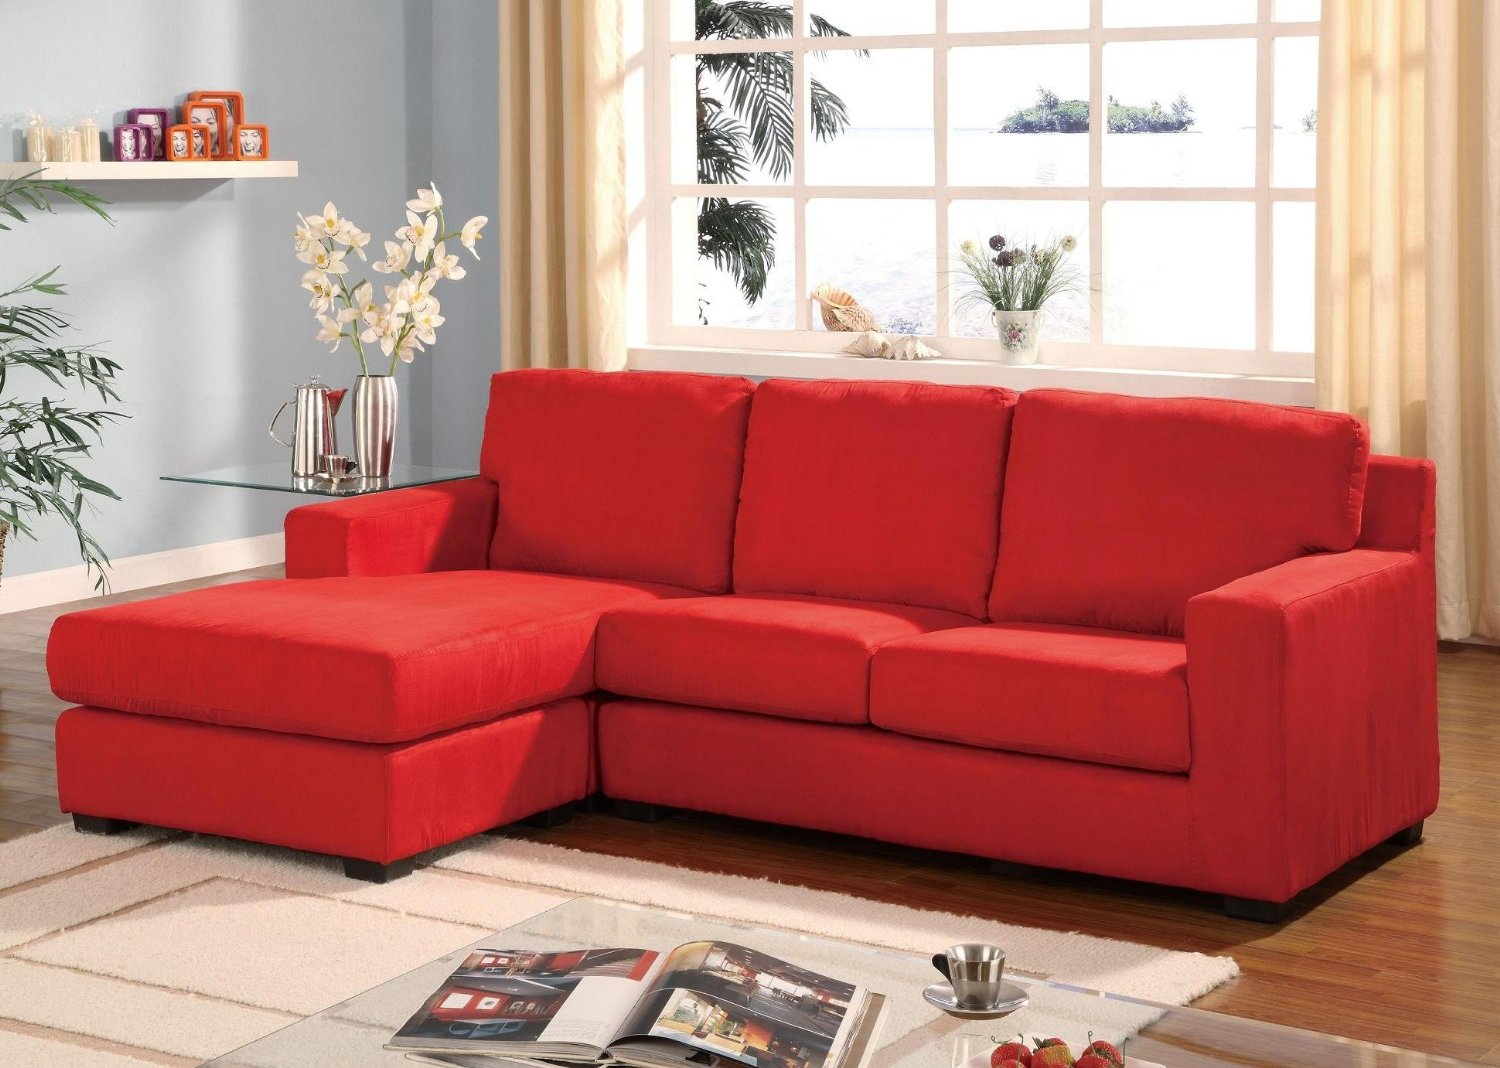 Red Sofa Living Room Decor Affordable Sectional Couches For Cozy Living Room Ideas Homesfeed